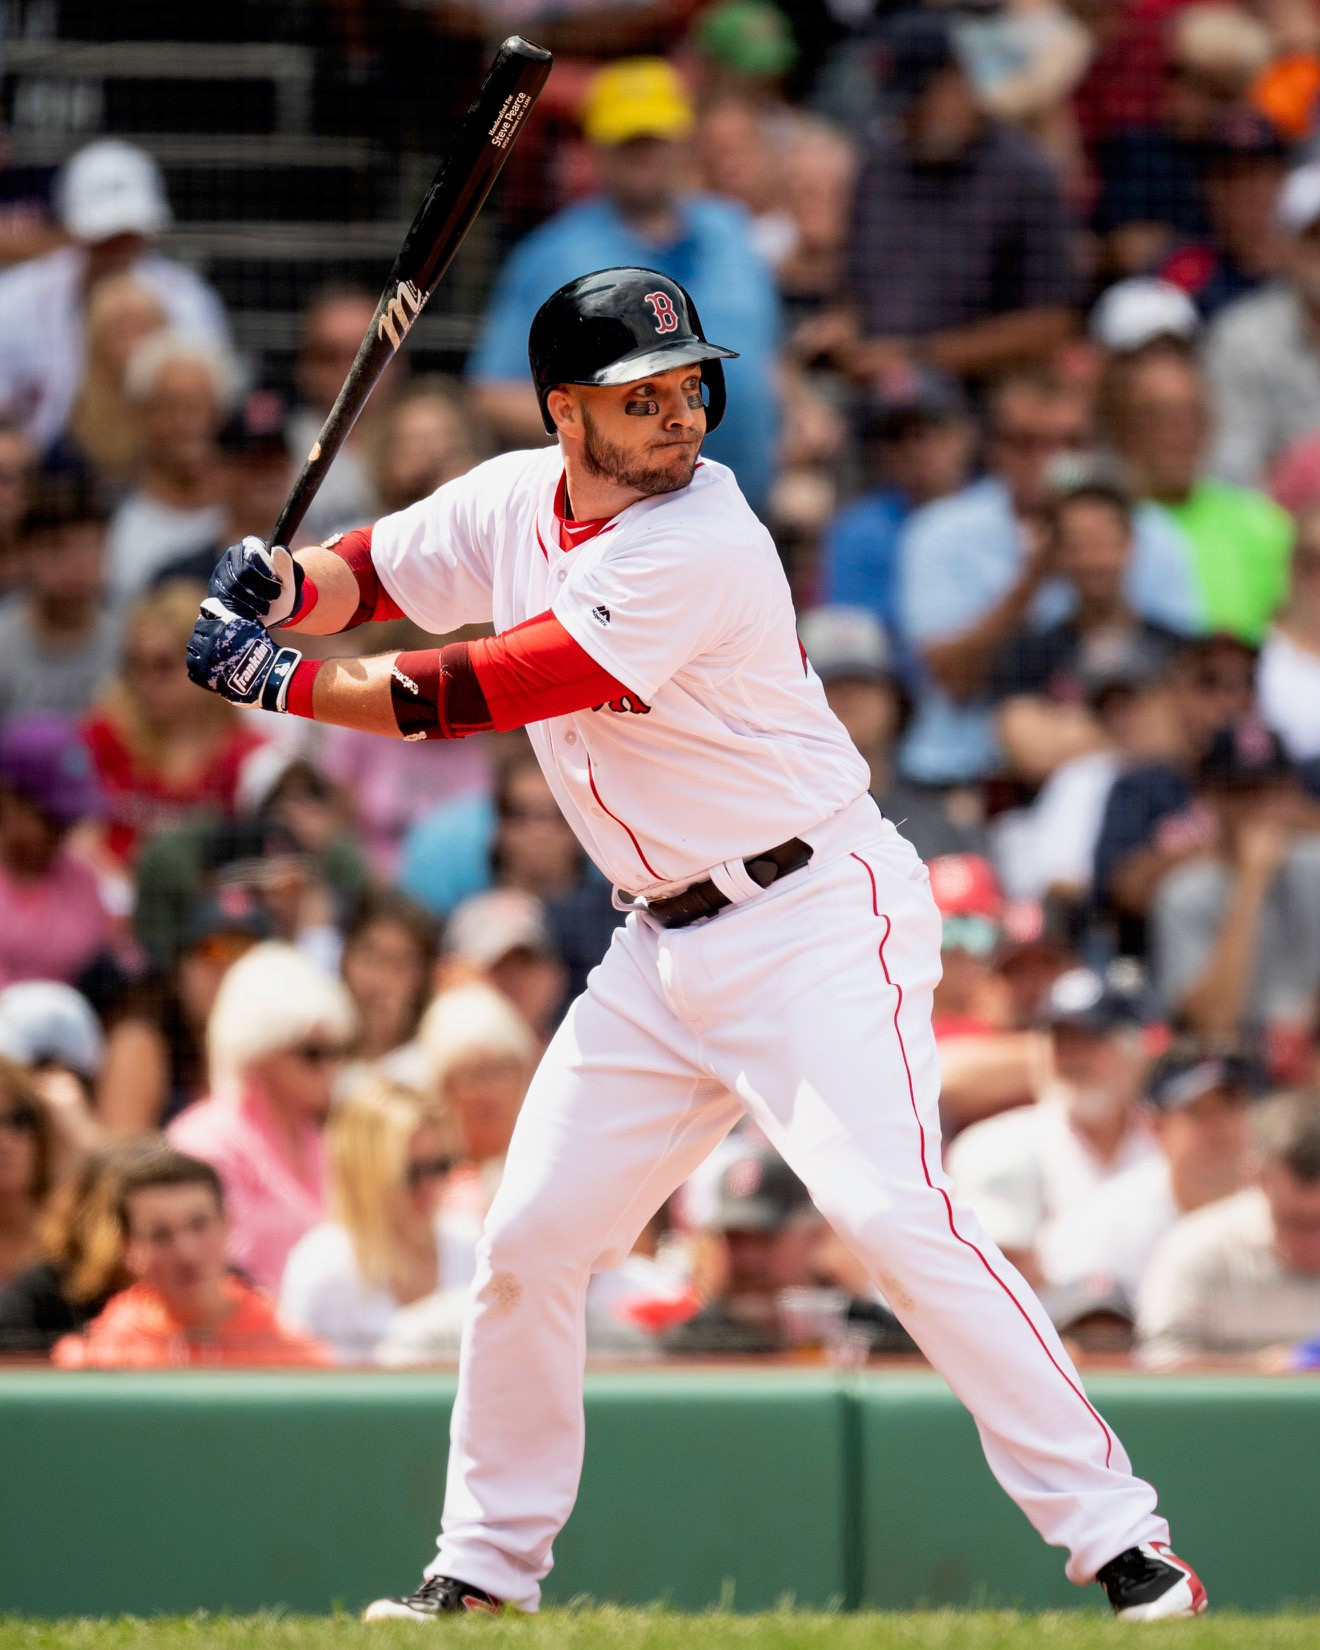 Steve Pearce (Photo courtesy of Boston Red Sox)